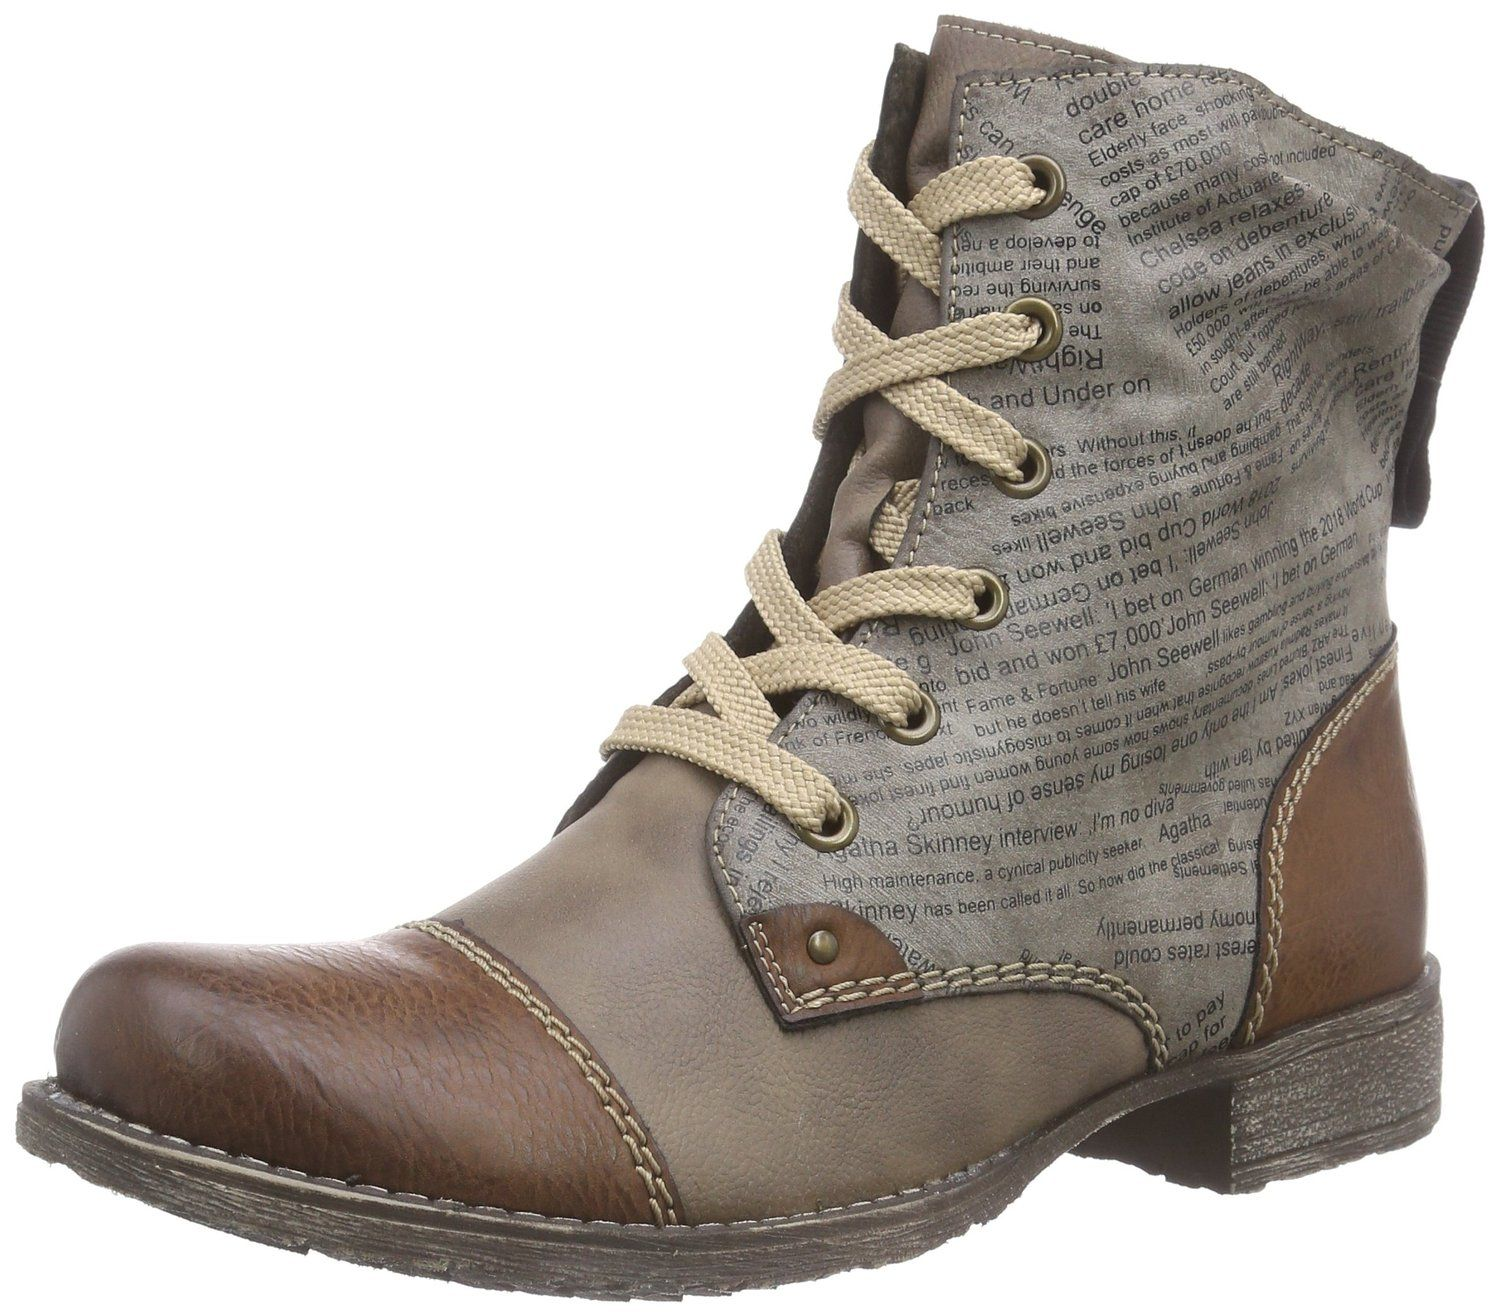 Pin on Women's snow boots